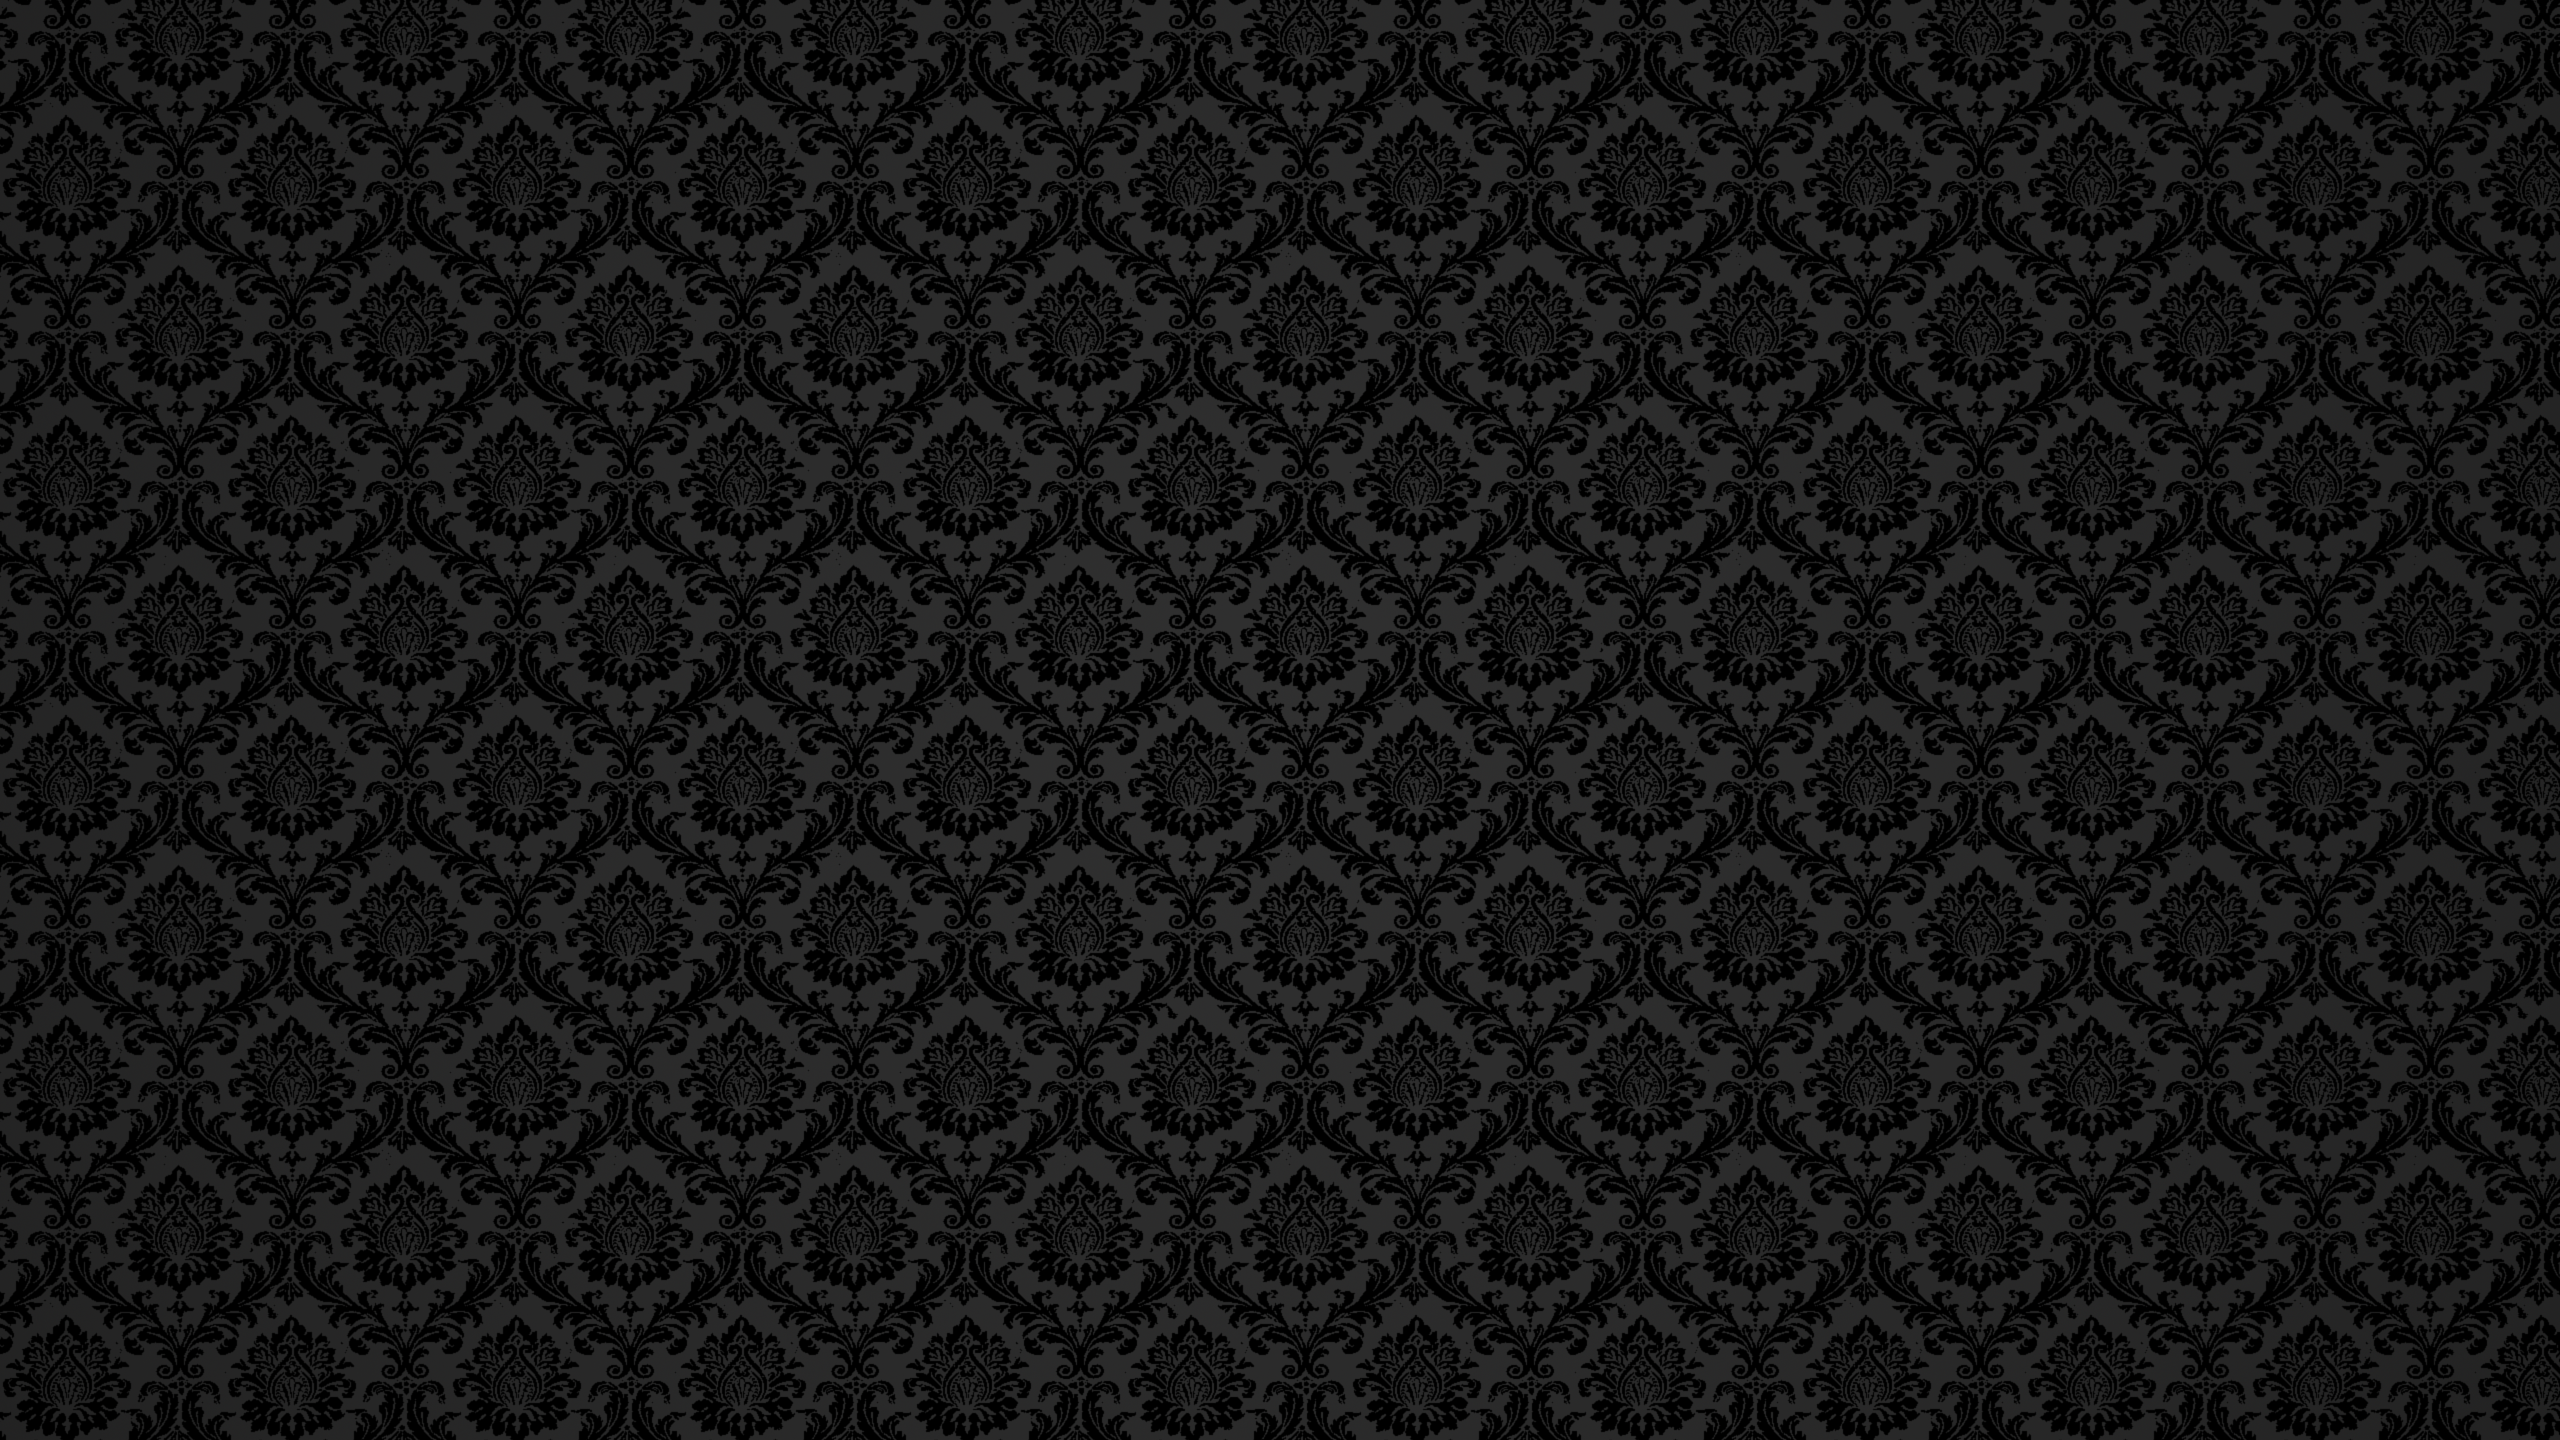 2560x1440 Texture Background Youtube Channel Cover